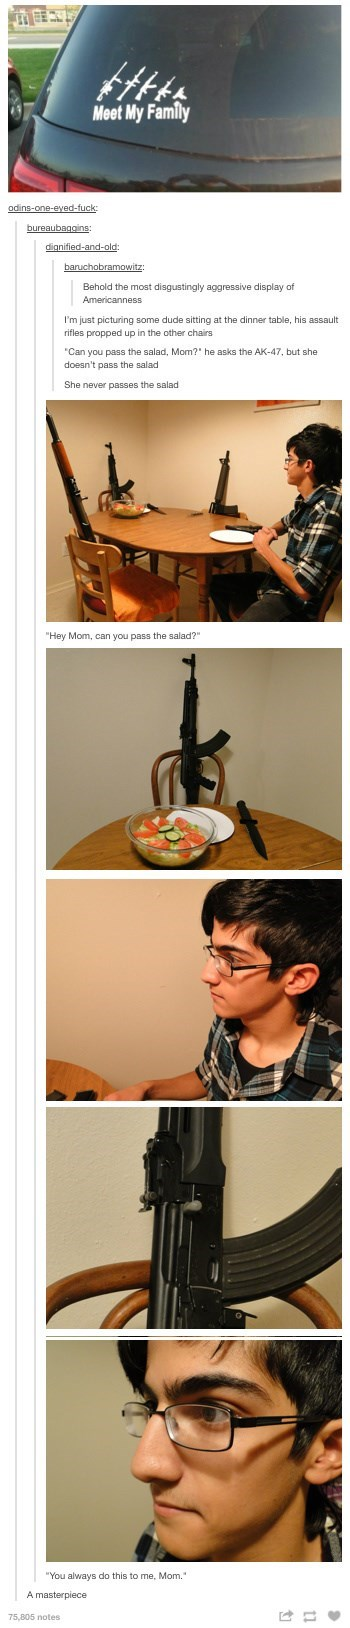 family,guns,tumblr,weird,failbook,g rated